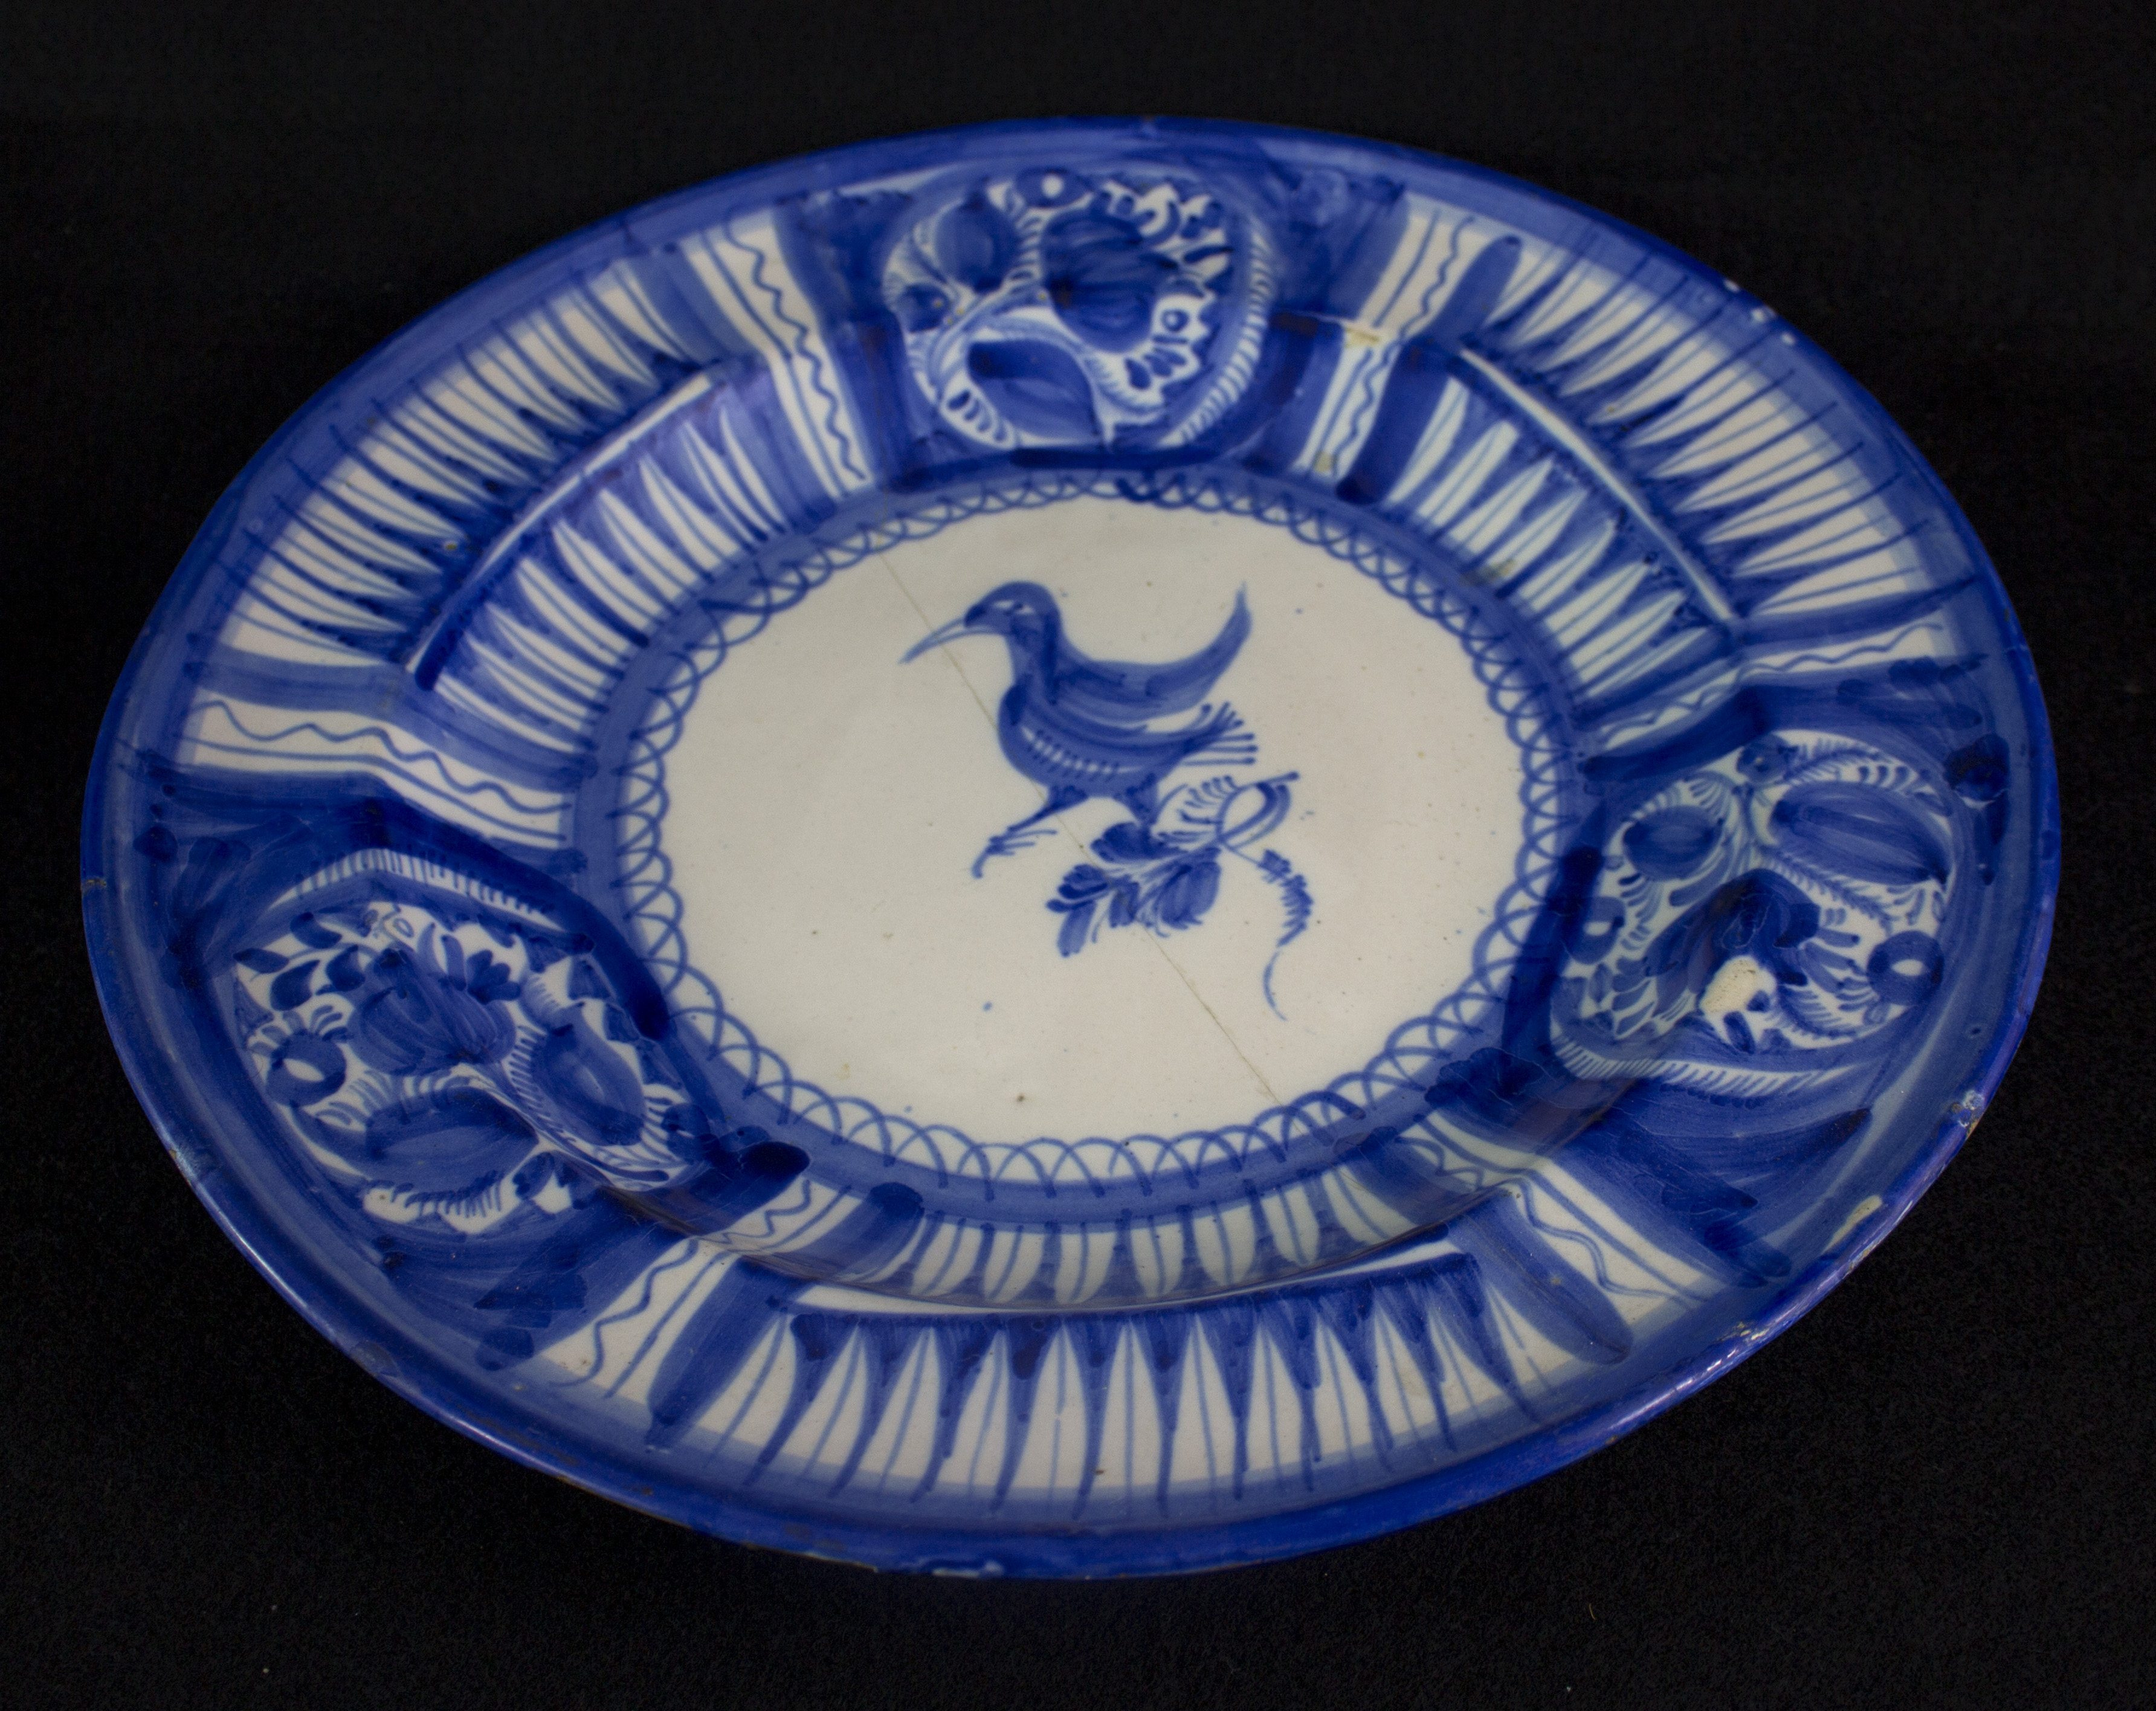 a blue and white plate with the image of a duck